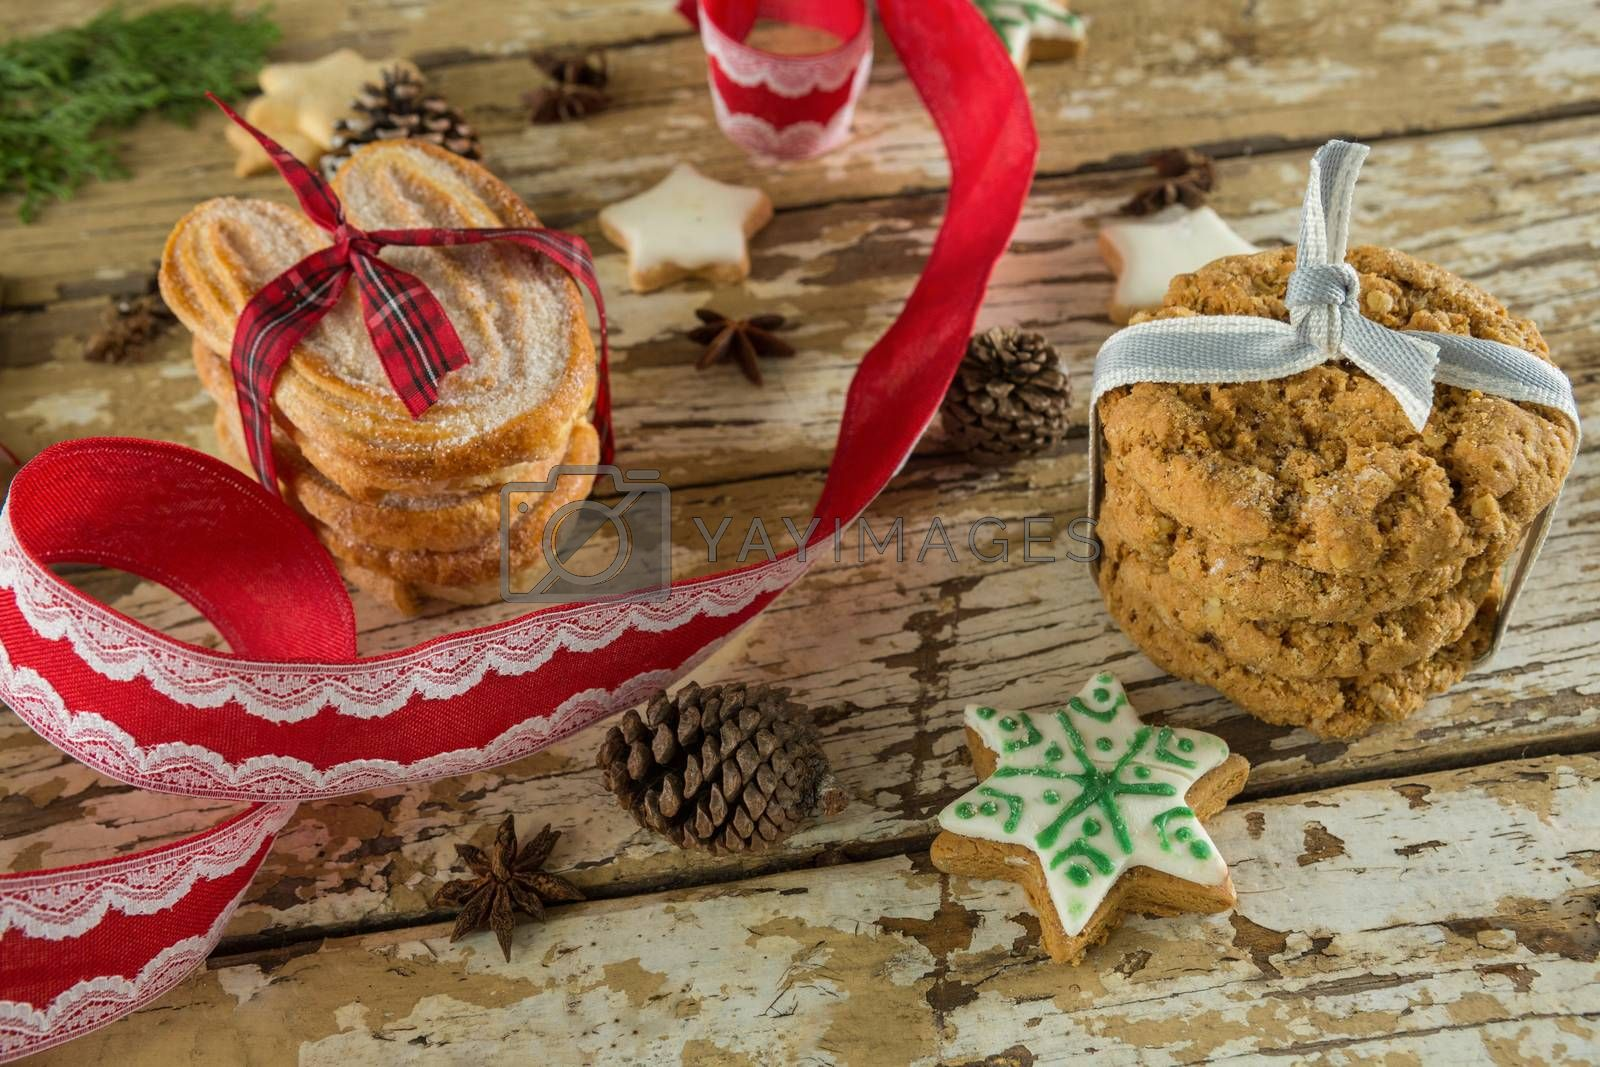 Cookies and christmas decoration on wooden plank by Wavebreakmedia